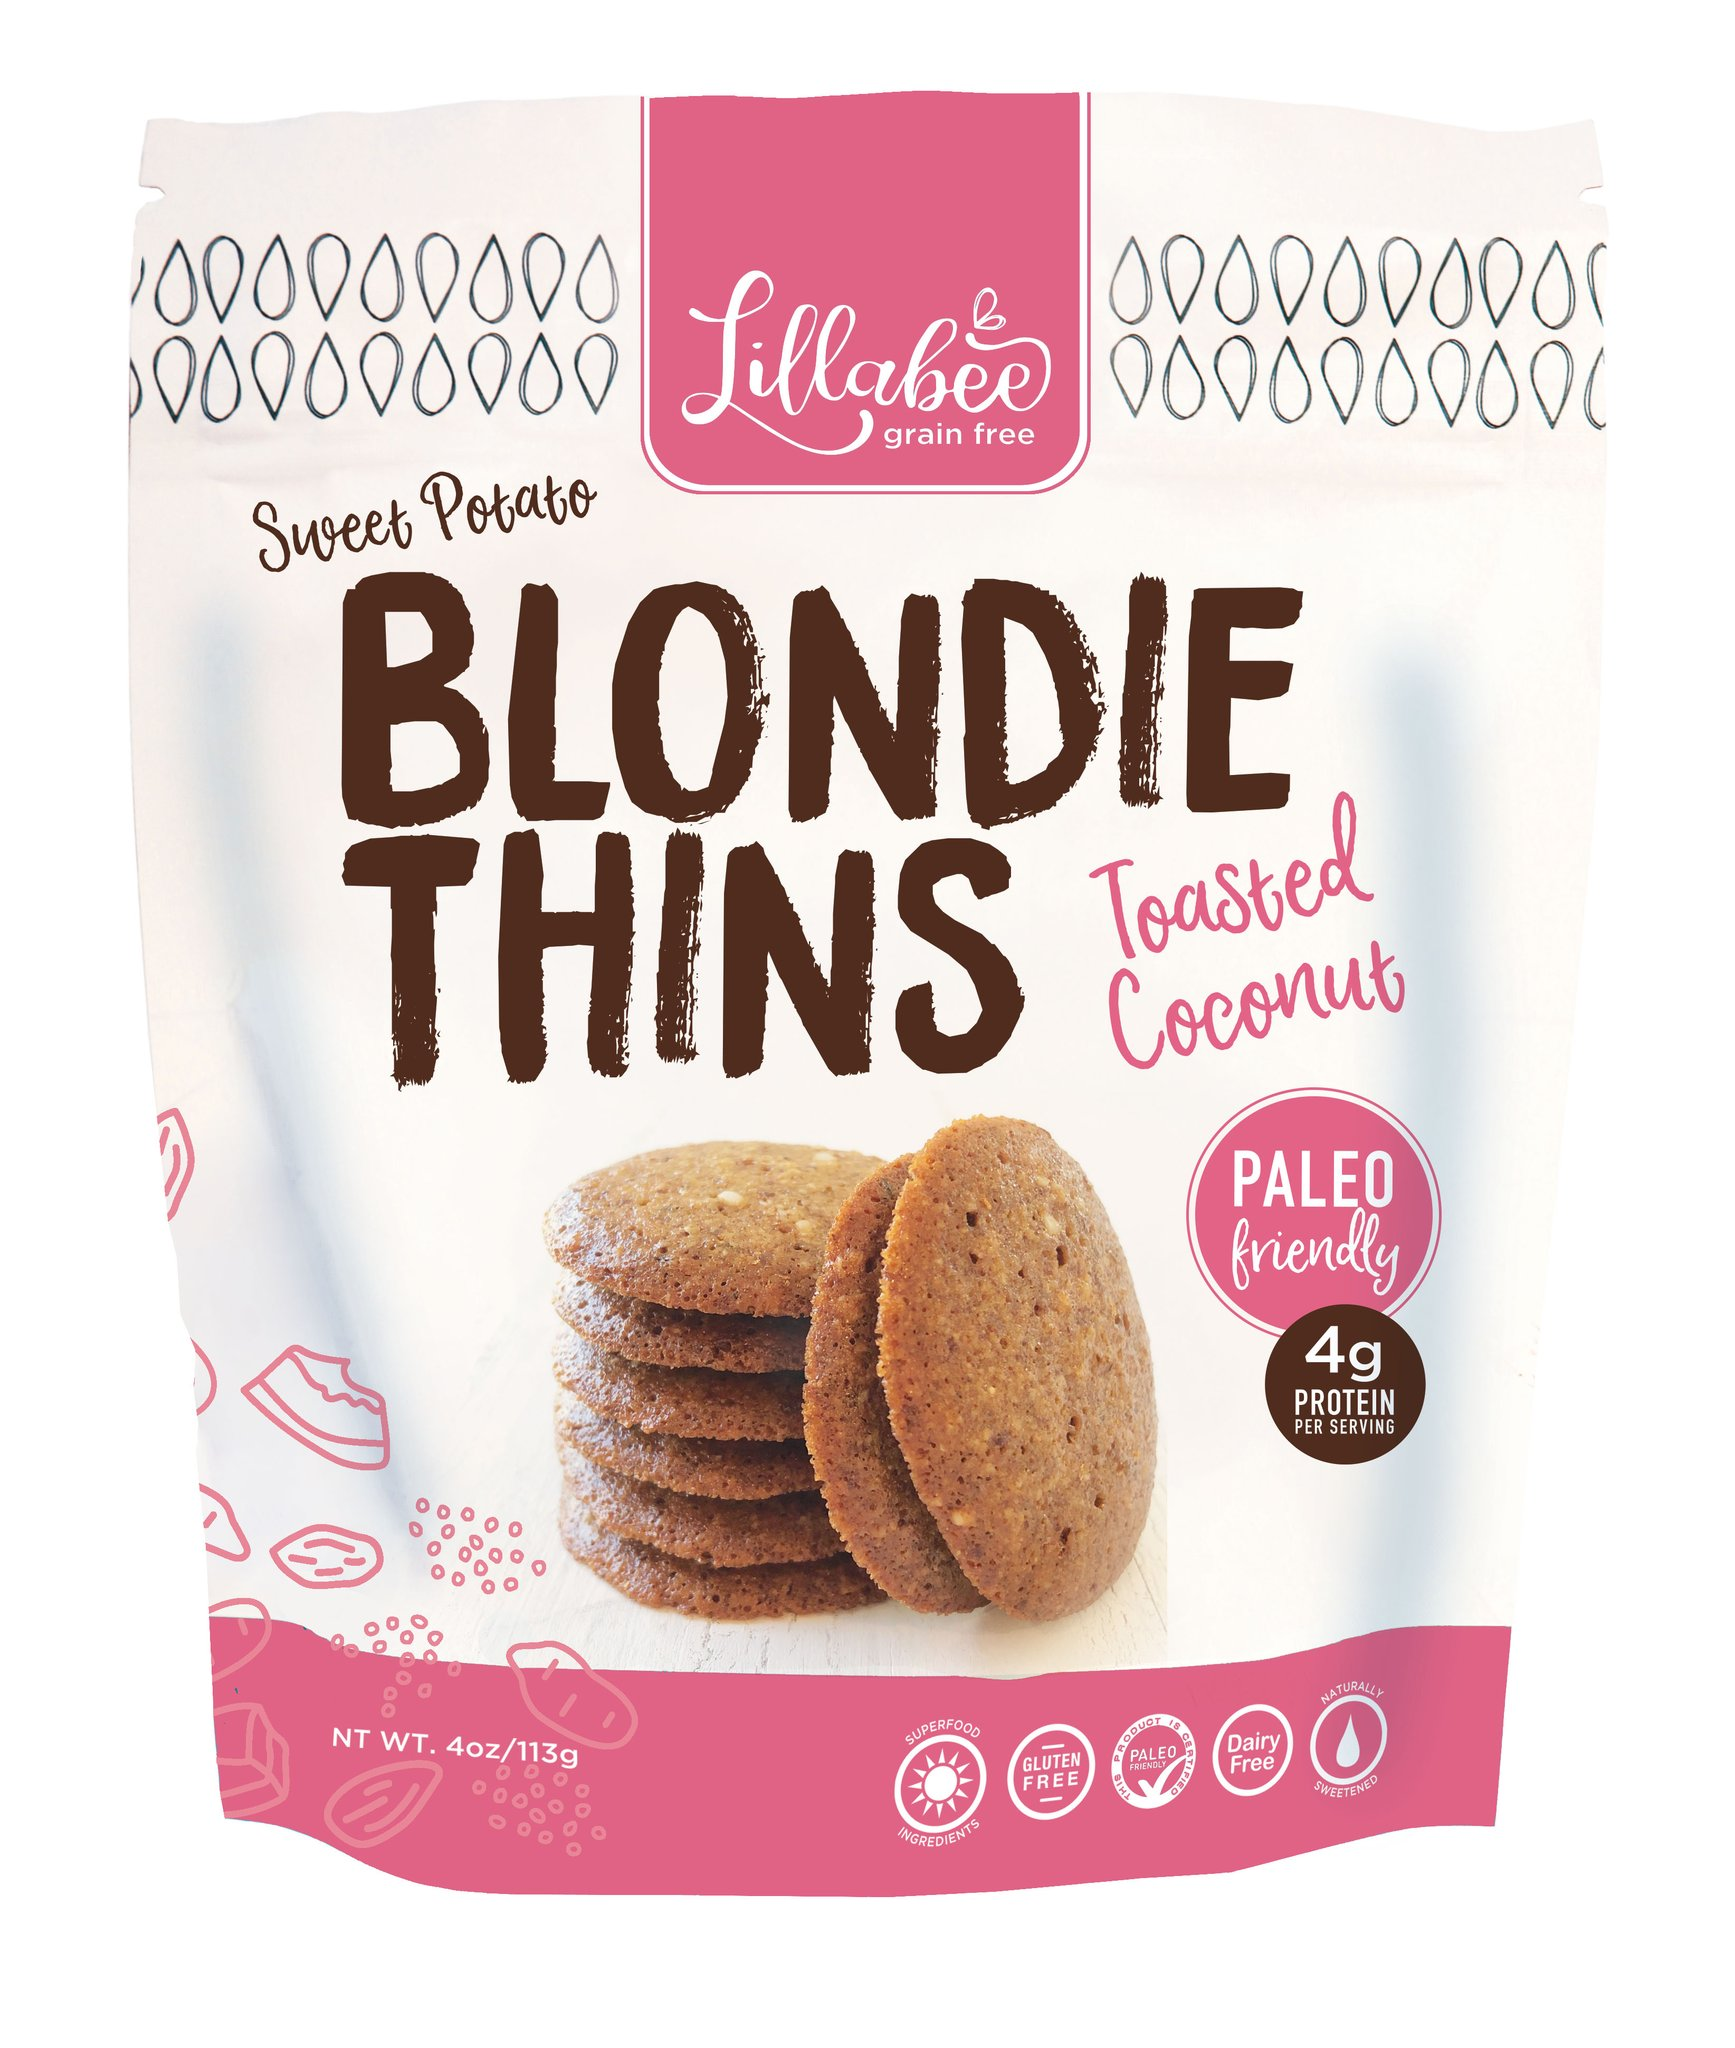 Blondie Thins Toasted Coconut - Lillabee Snacks - Paleo Friendly by the Paleo Foundation